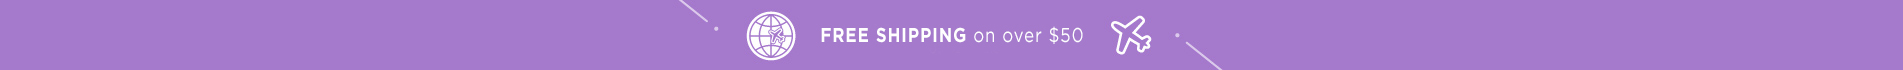 Free Shipping on over USD50 at moonshot cosmetics